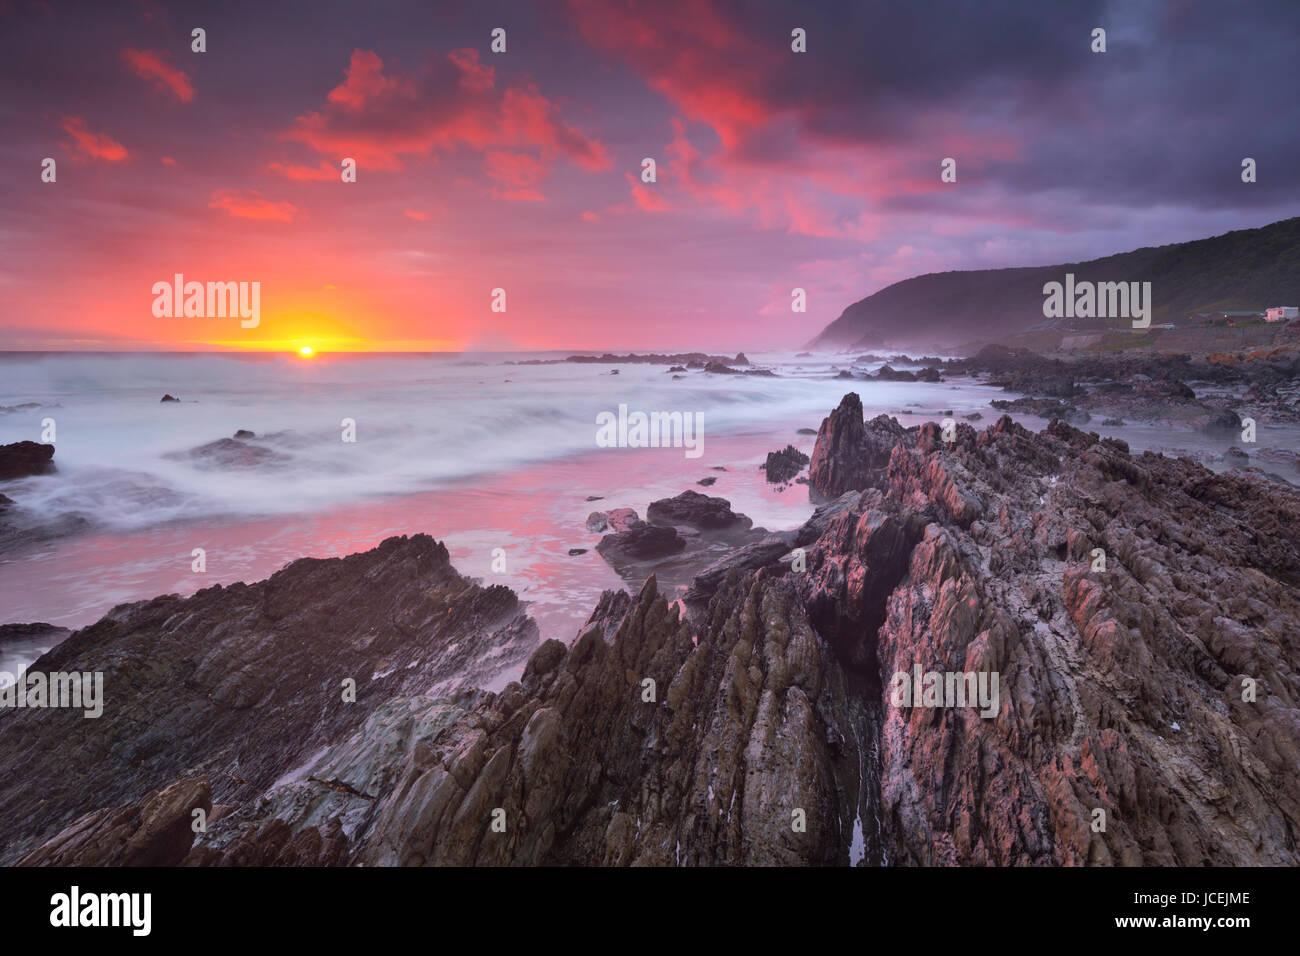 Spectacular sunset over the rocky coastline of the Tsitsikamma section of the Garden Route National Park, South - Stock Image